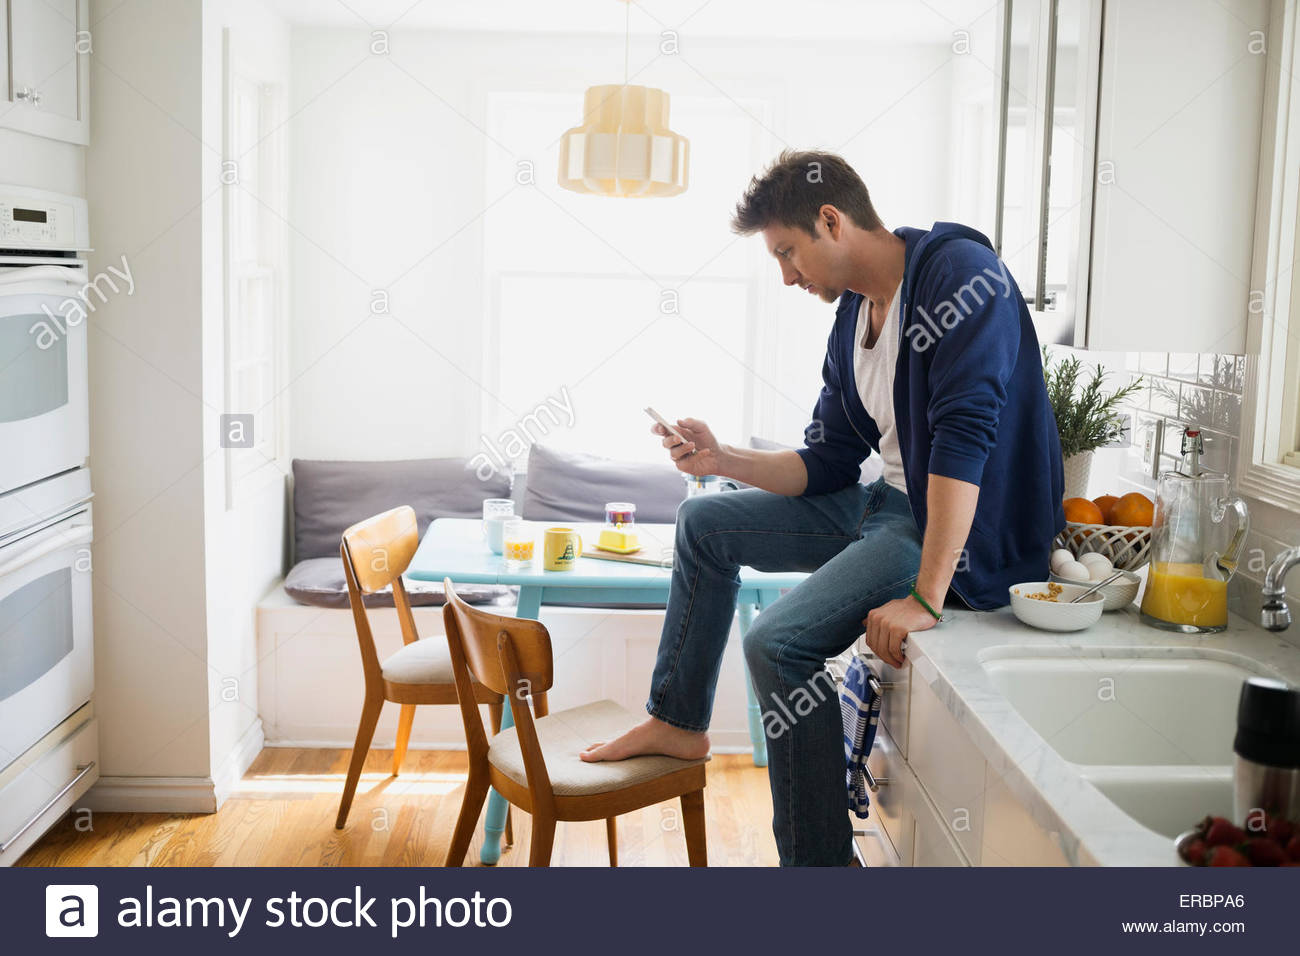 Casual man texting cell phone on kitchen counter - Stock Image